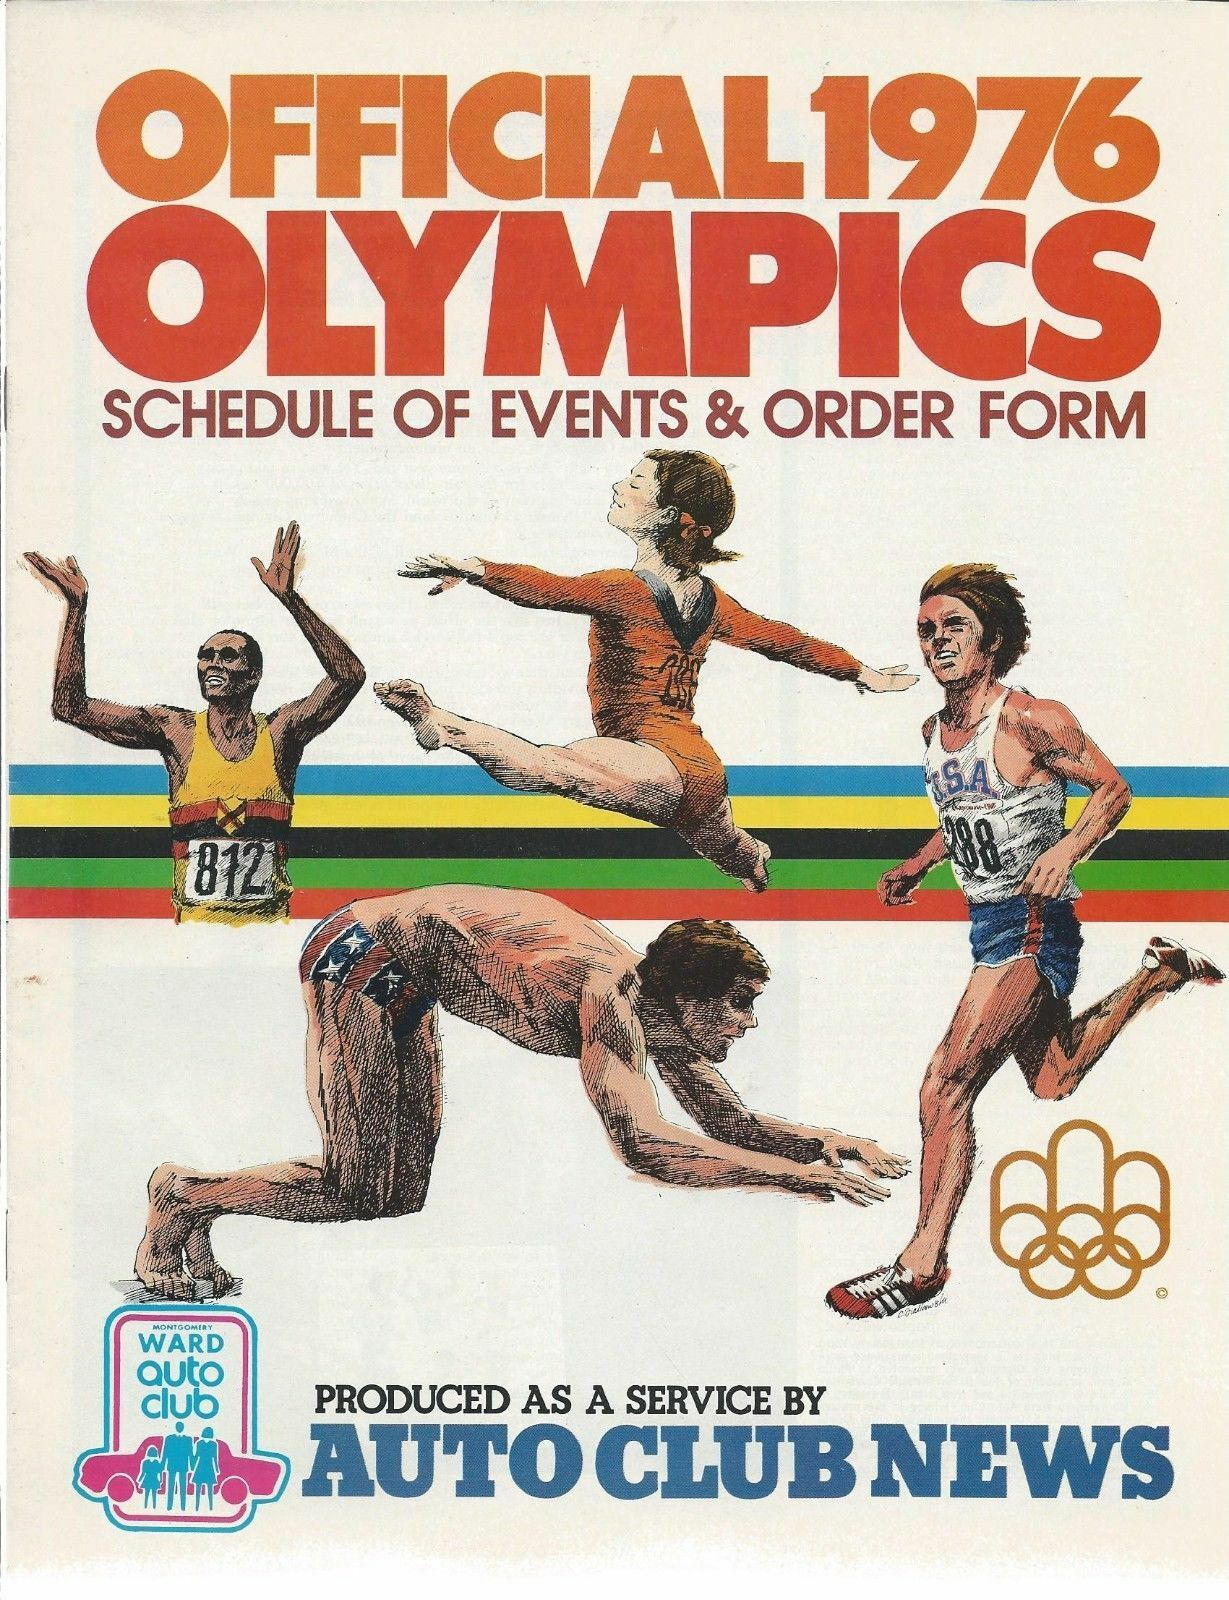 1976 Olympics Official Schedule of Events n Order Form